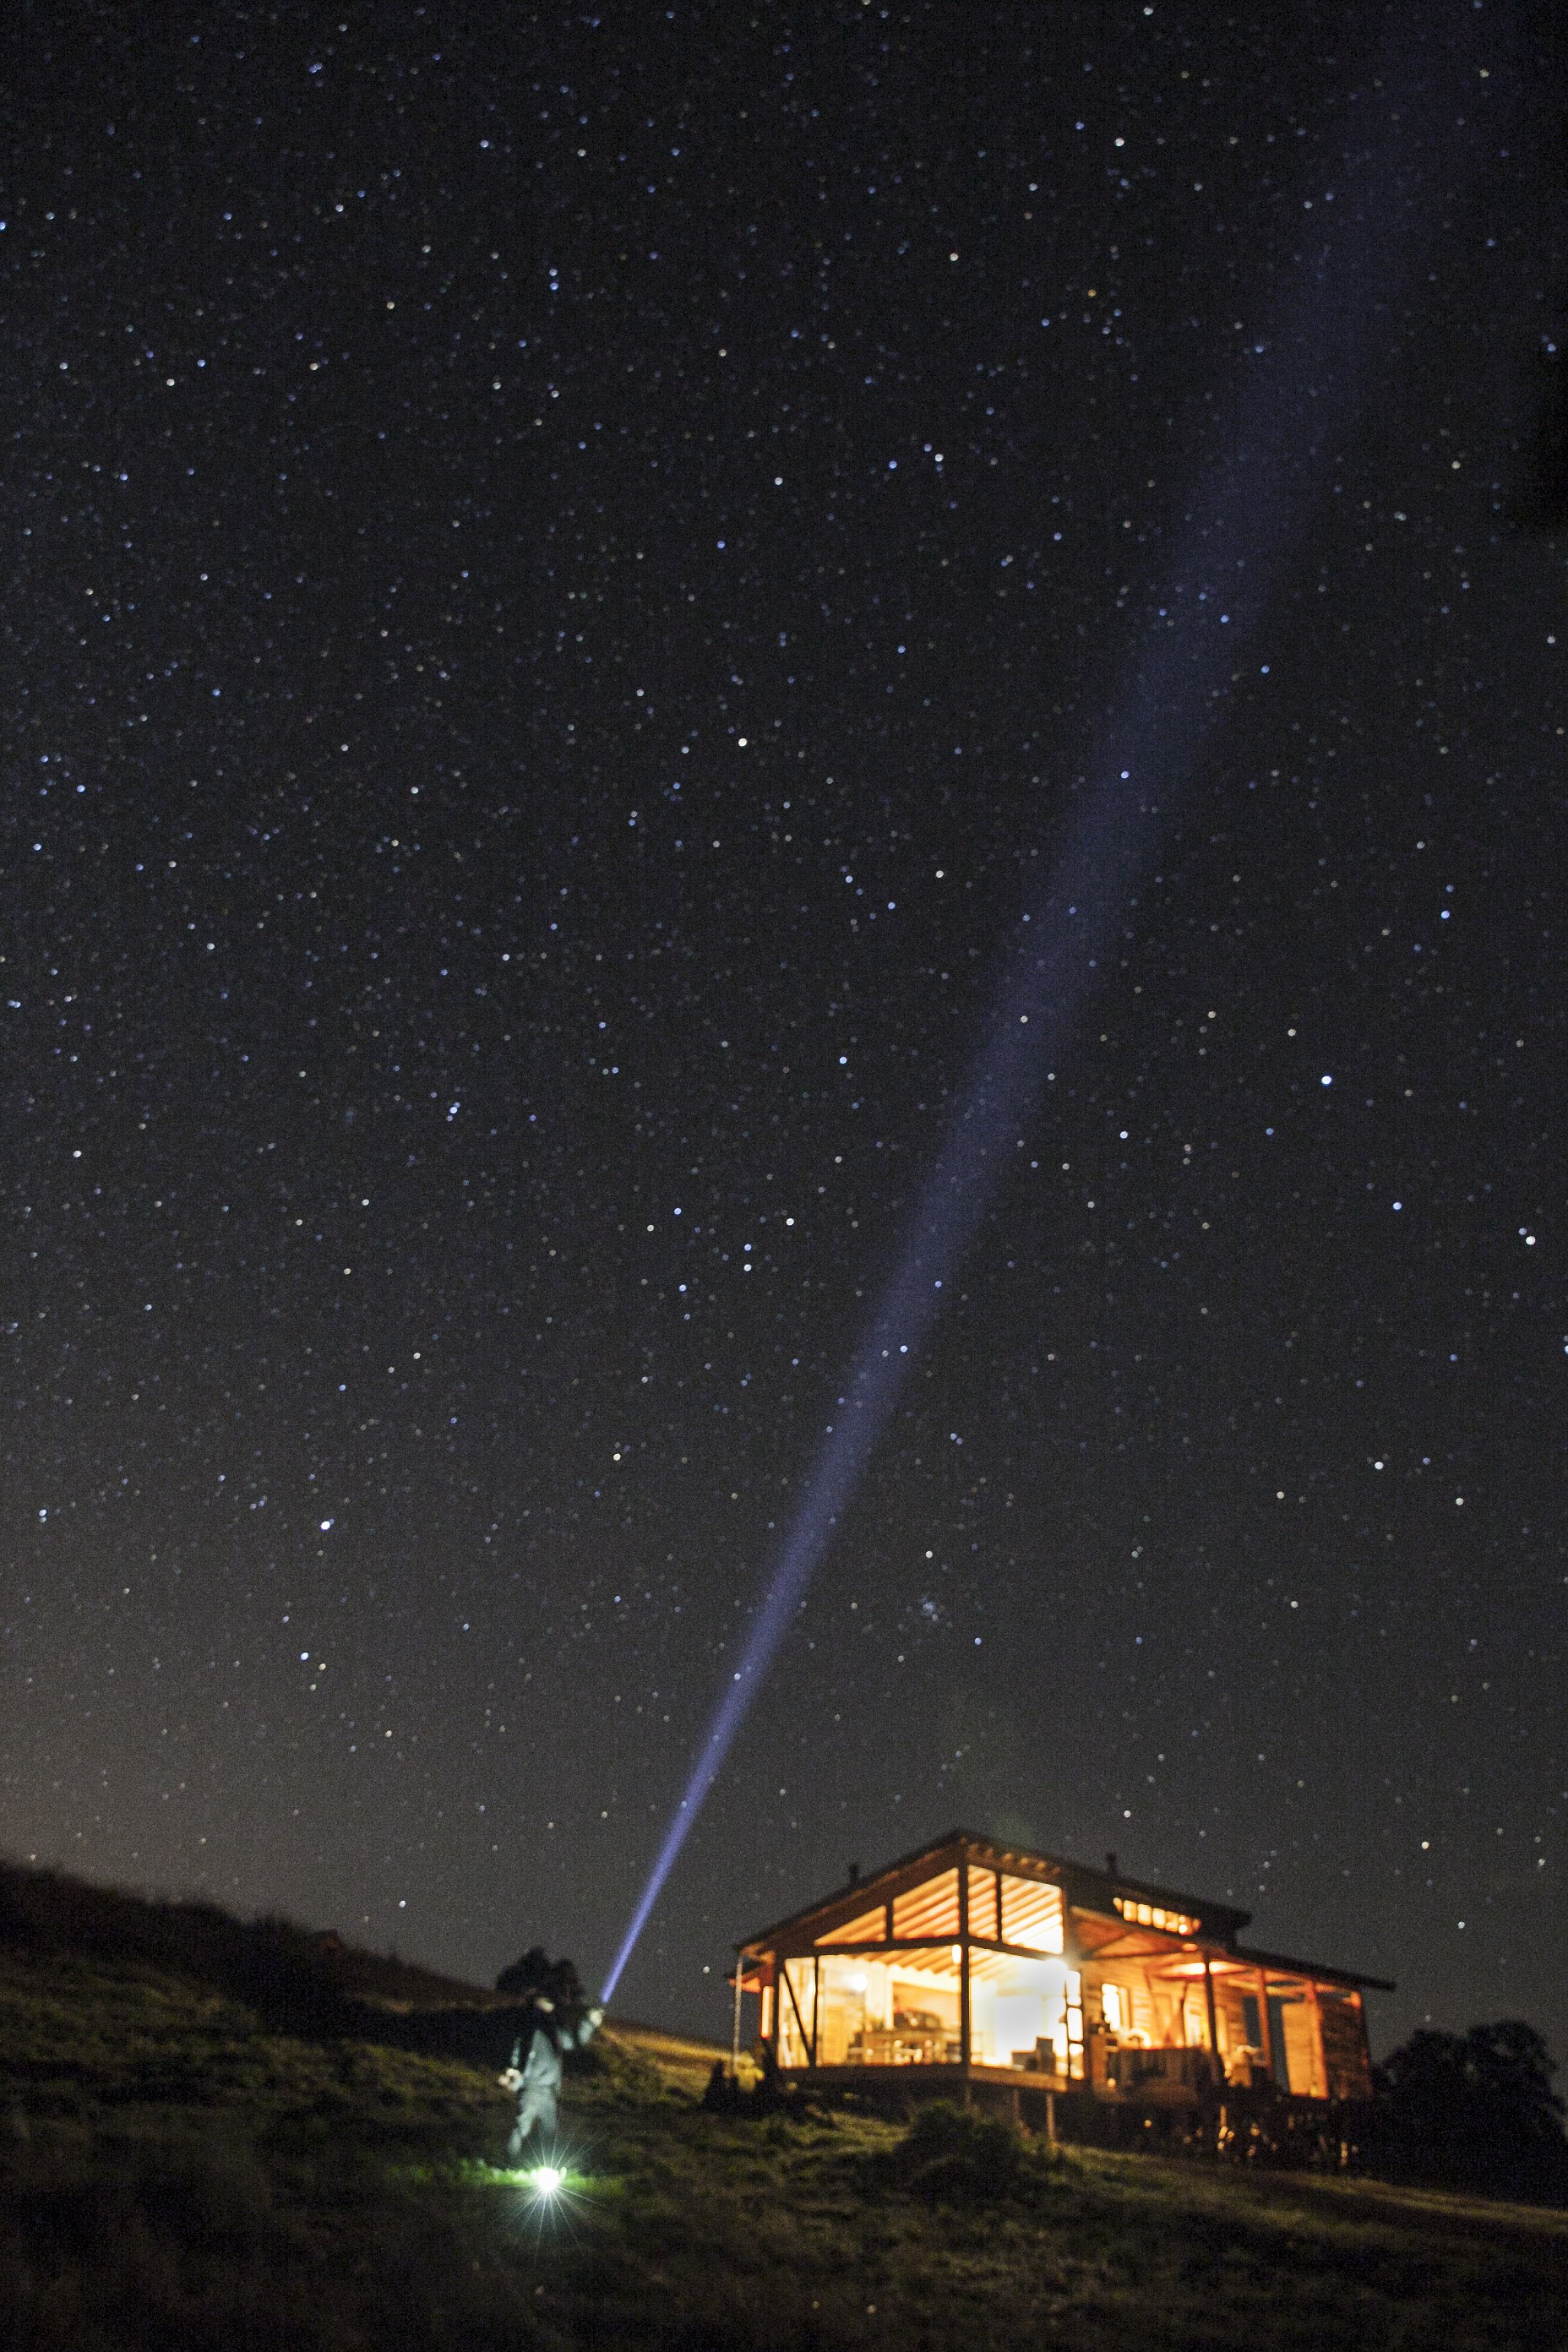 Stargazing at the night sky at Samadhi Eco Resort, Chile